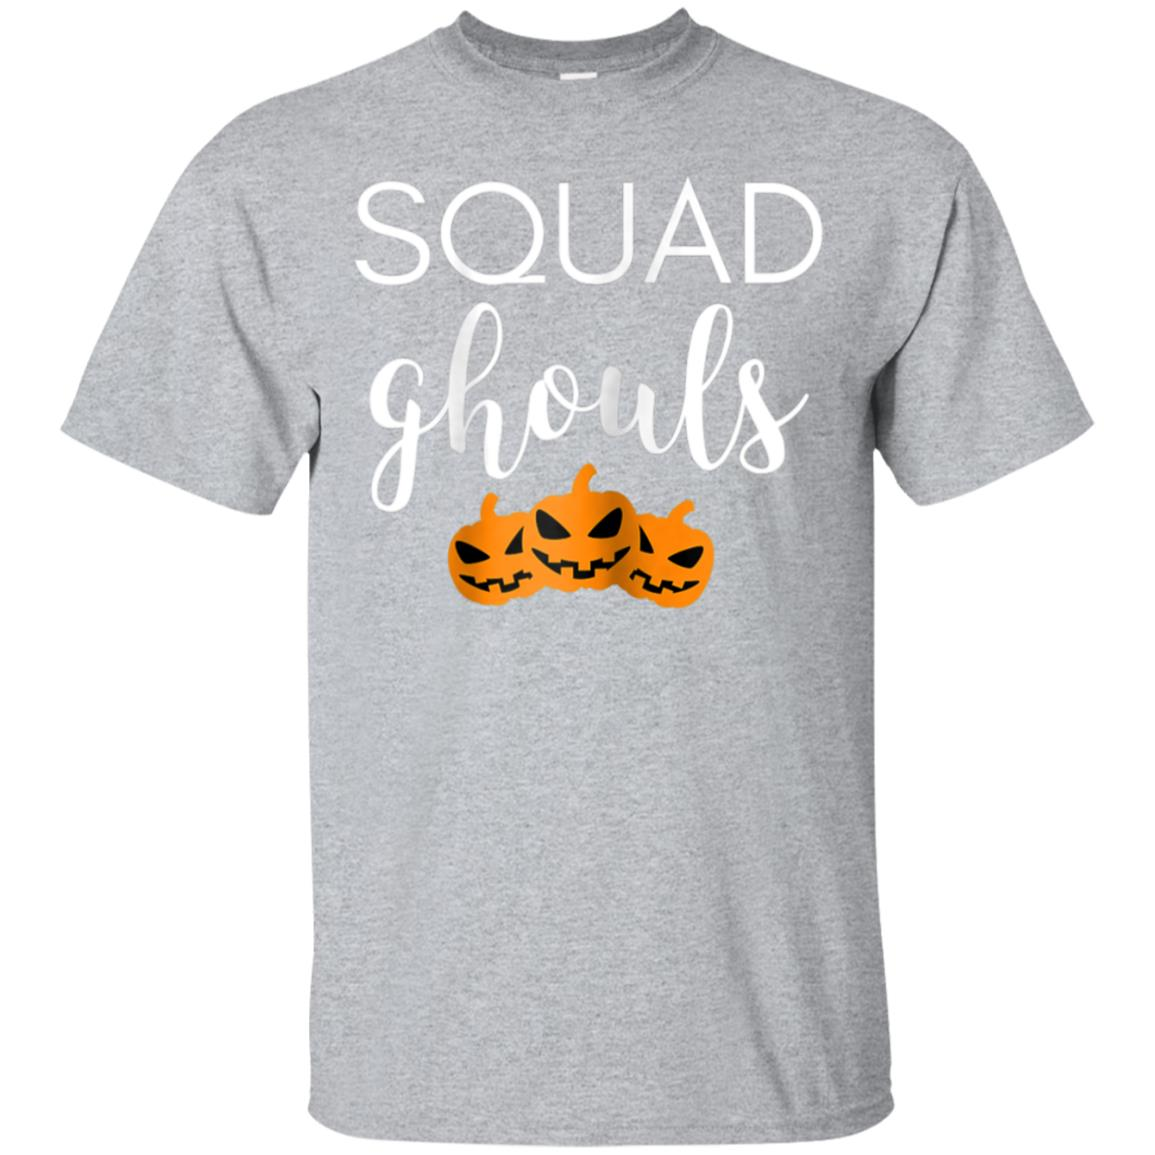 Womens Funny Halloween Costume Squad Ghouls Ghost Shirt 99promocode